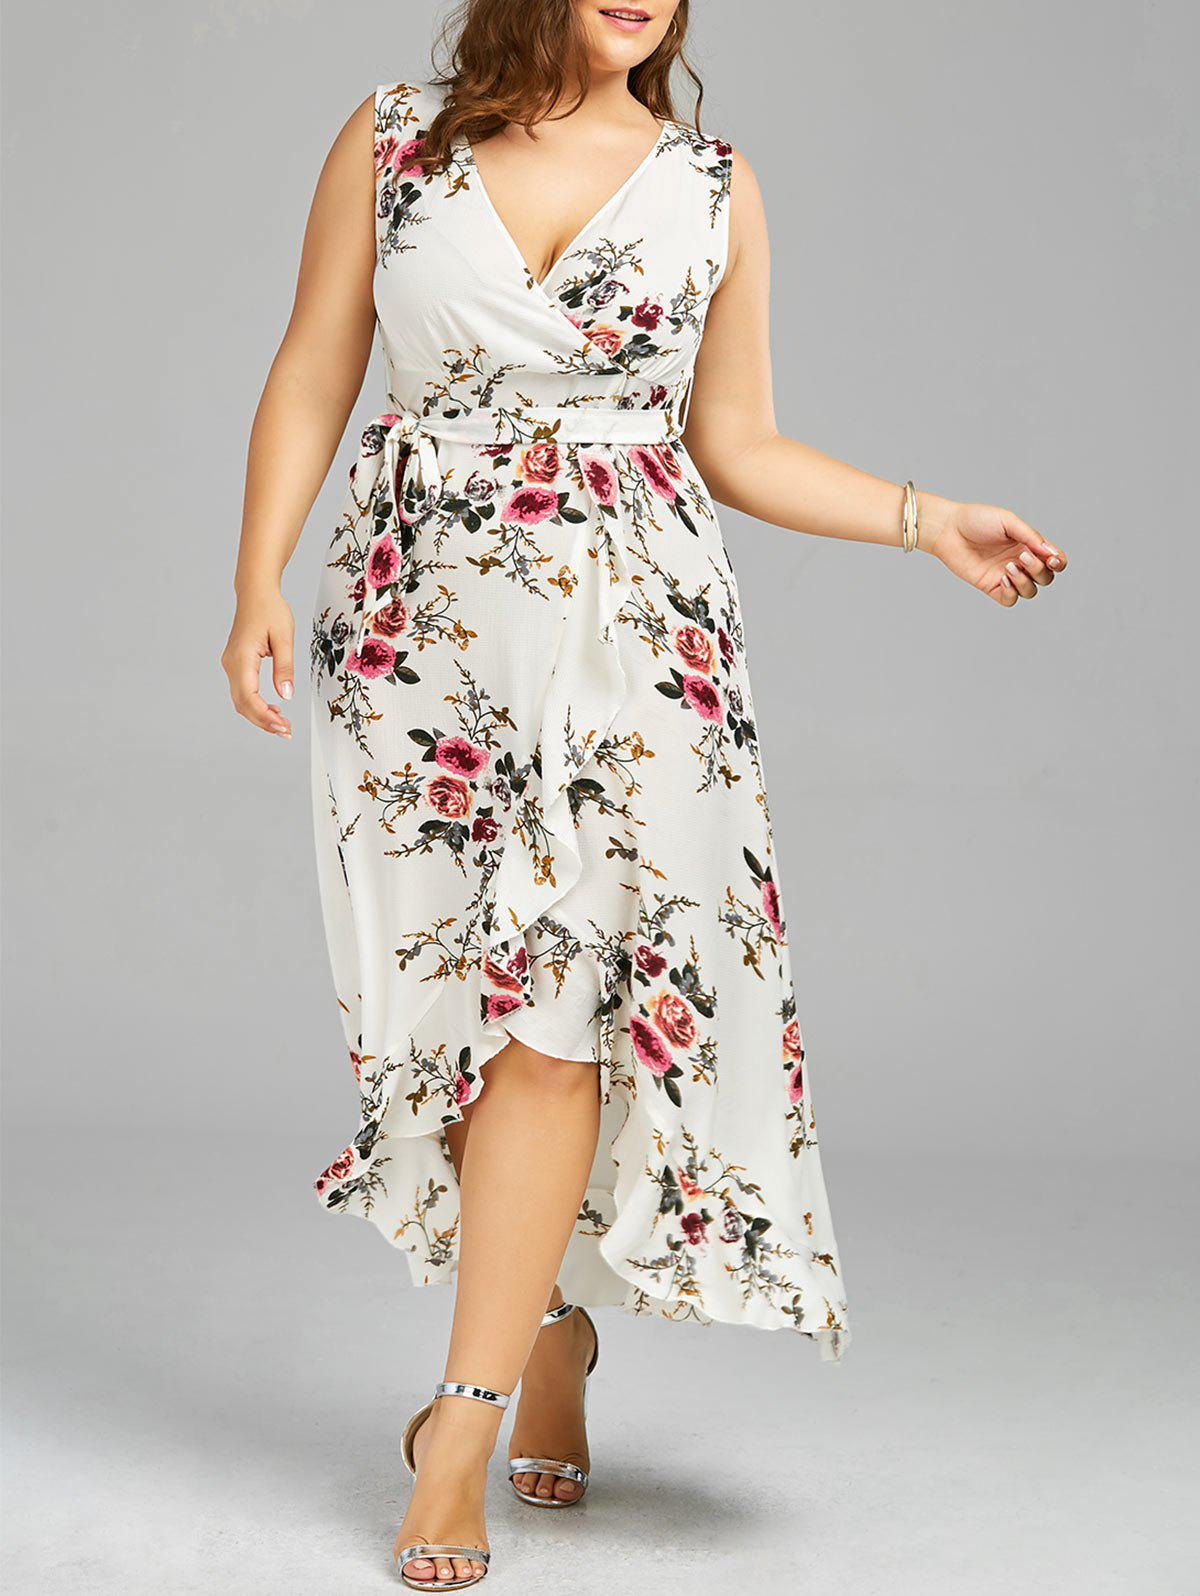 31% OFF] Plus Size High Low Long Floral Dress | Rosegal